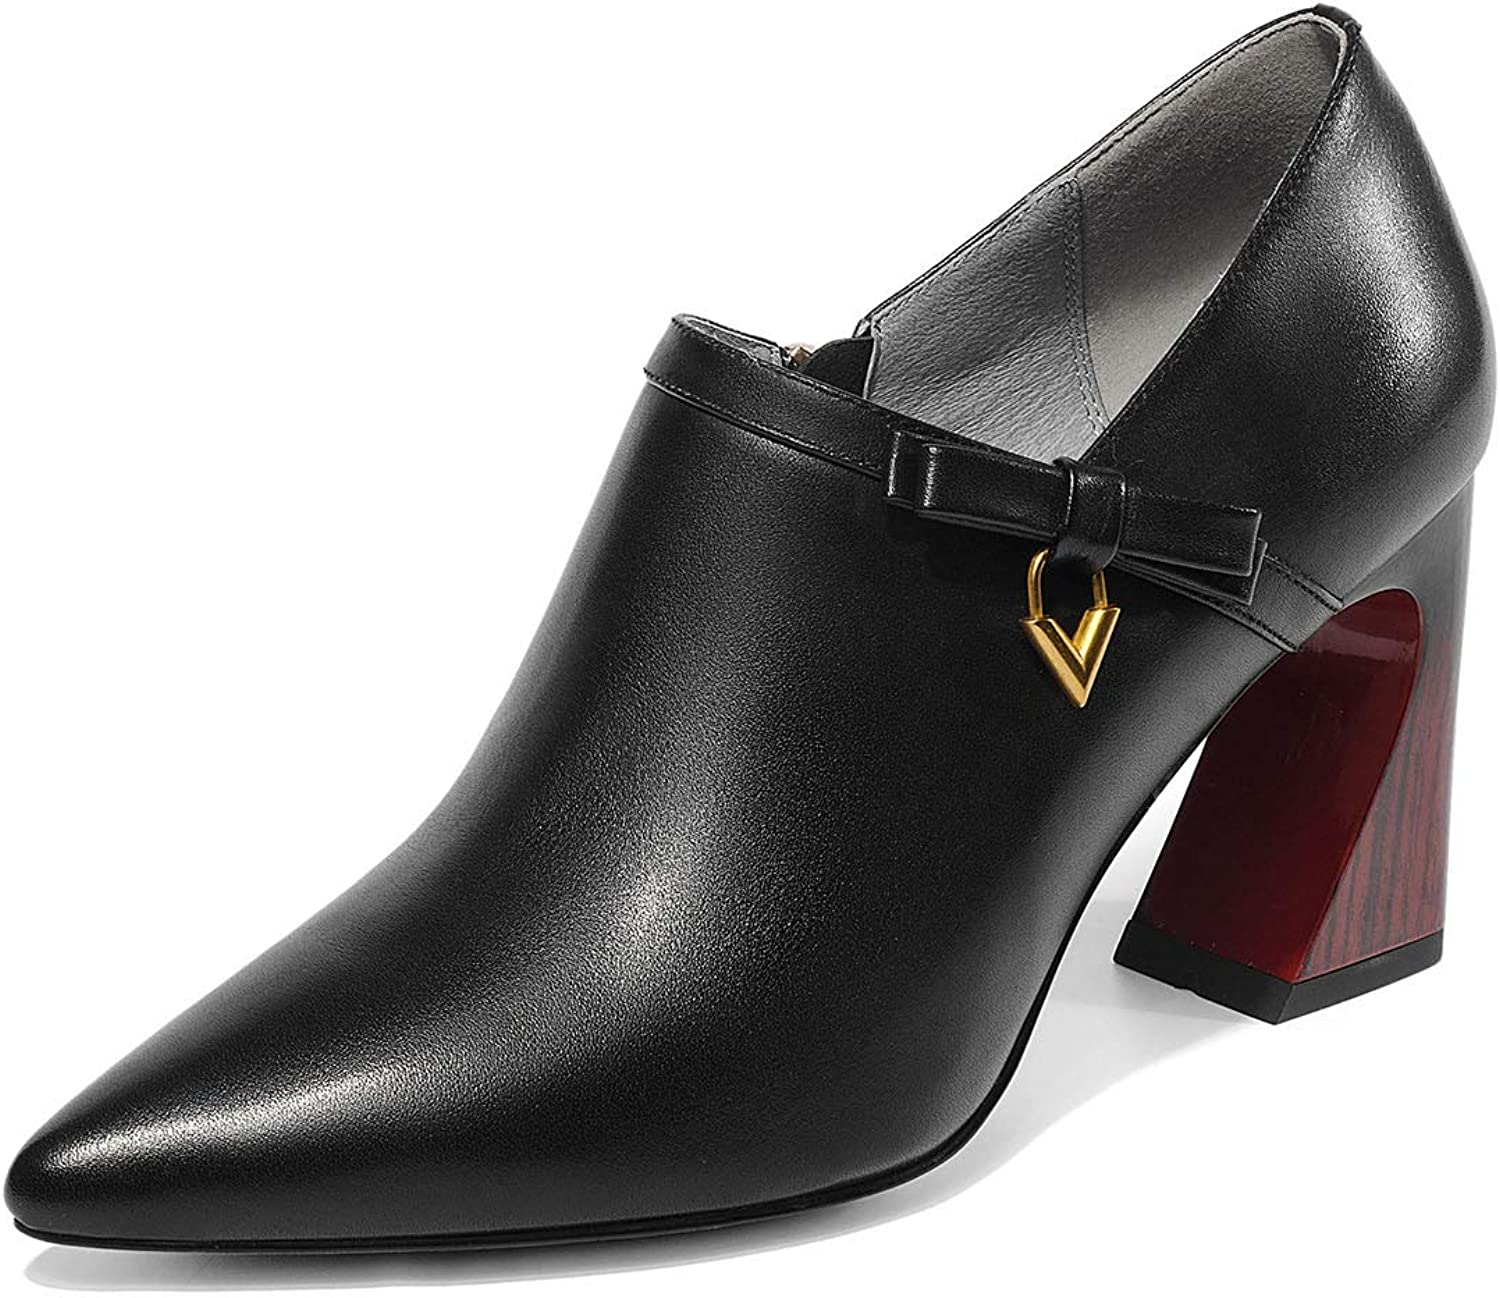 Gfphfm damen es schuhe, 2019 New Metal Metal Metal Side Zipper Deep Mouth Single schuhe Spring Fall Leather Fashion Pointed High Heels Ladies Wedding Party schuhe,A,38  6ce751